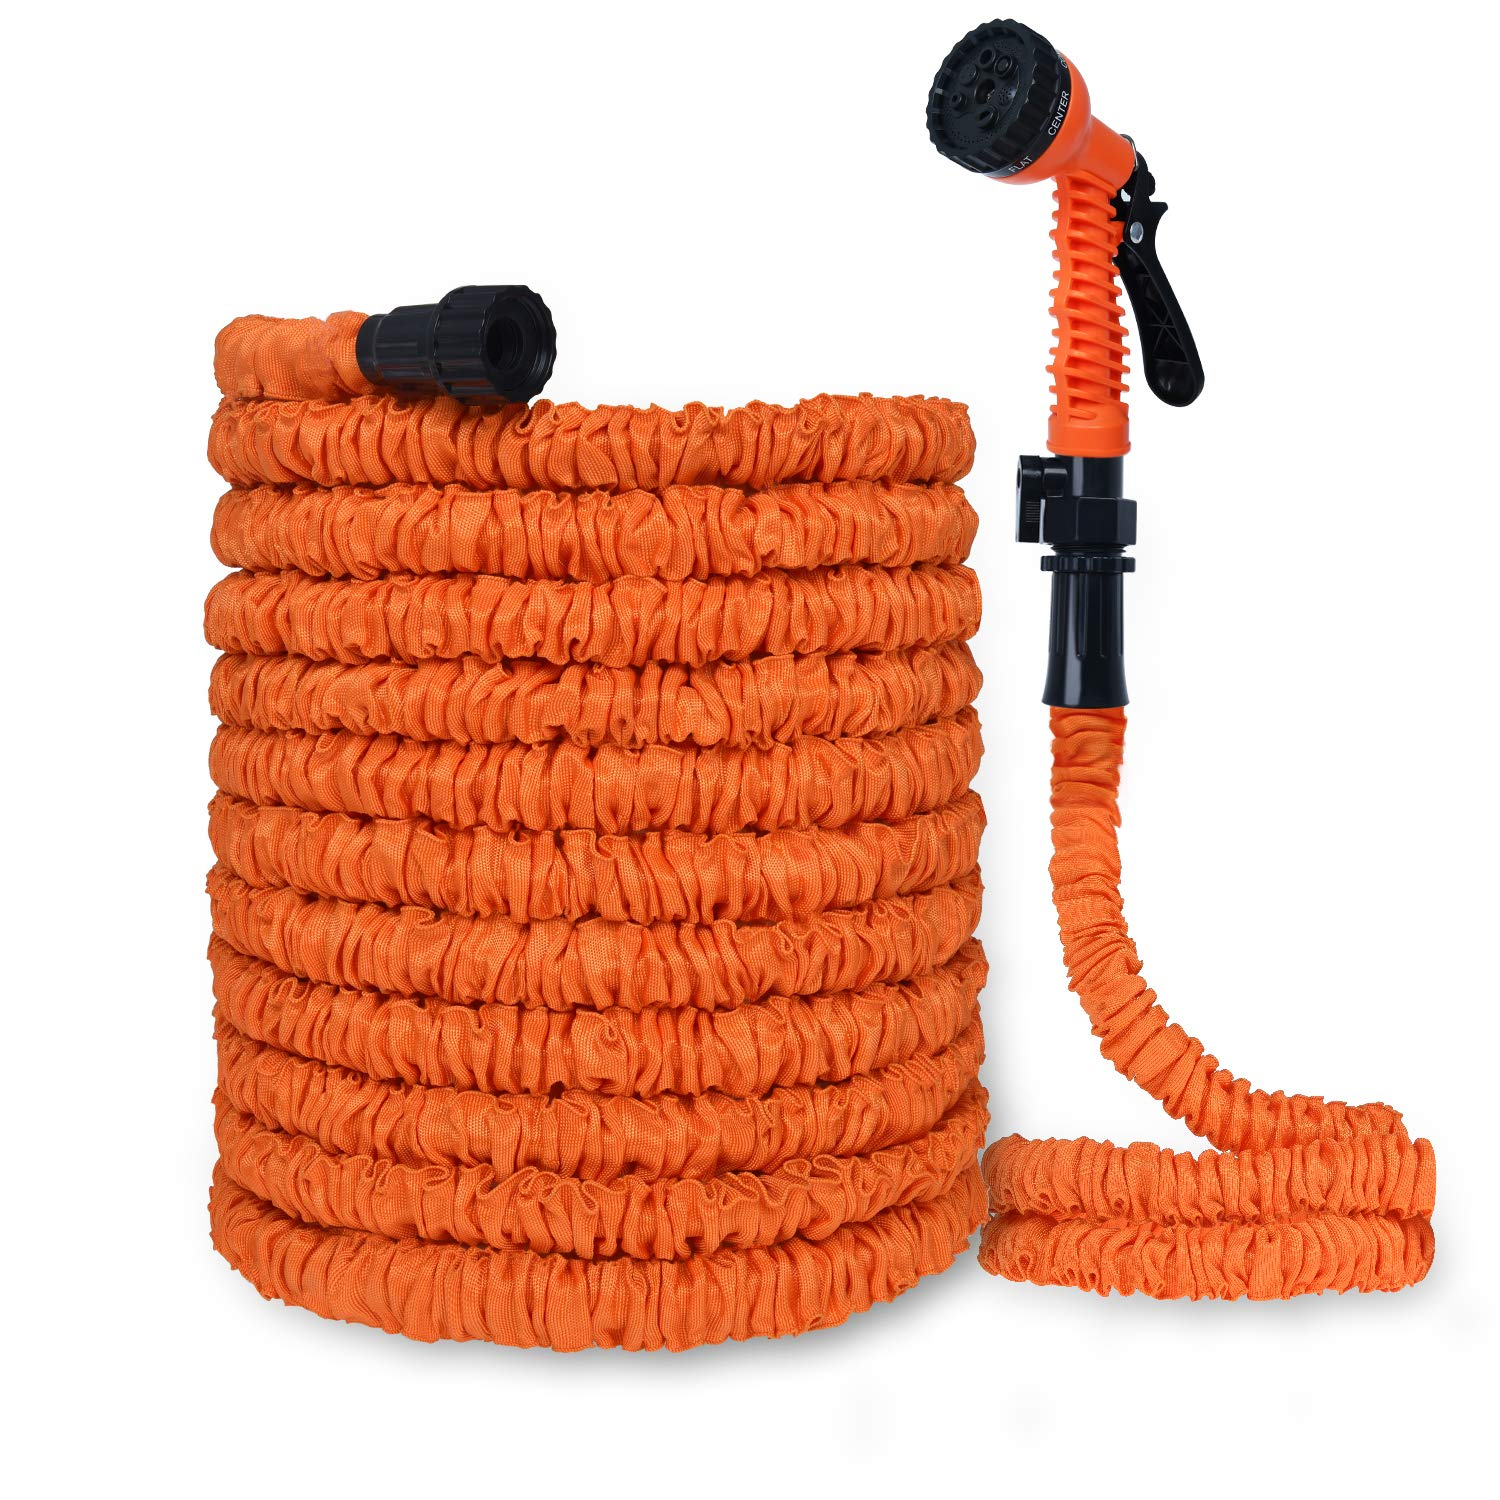 PanShield Expandable 100ft Garden Hose Lightweight and Kink Free Flexible Water Hose with Economic 7 Function Plastic Spray Nozzle Perfect Easy for Daily Use Orange